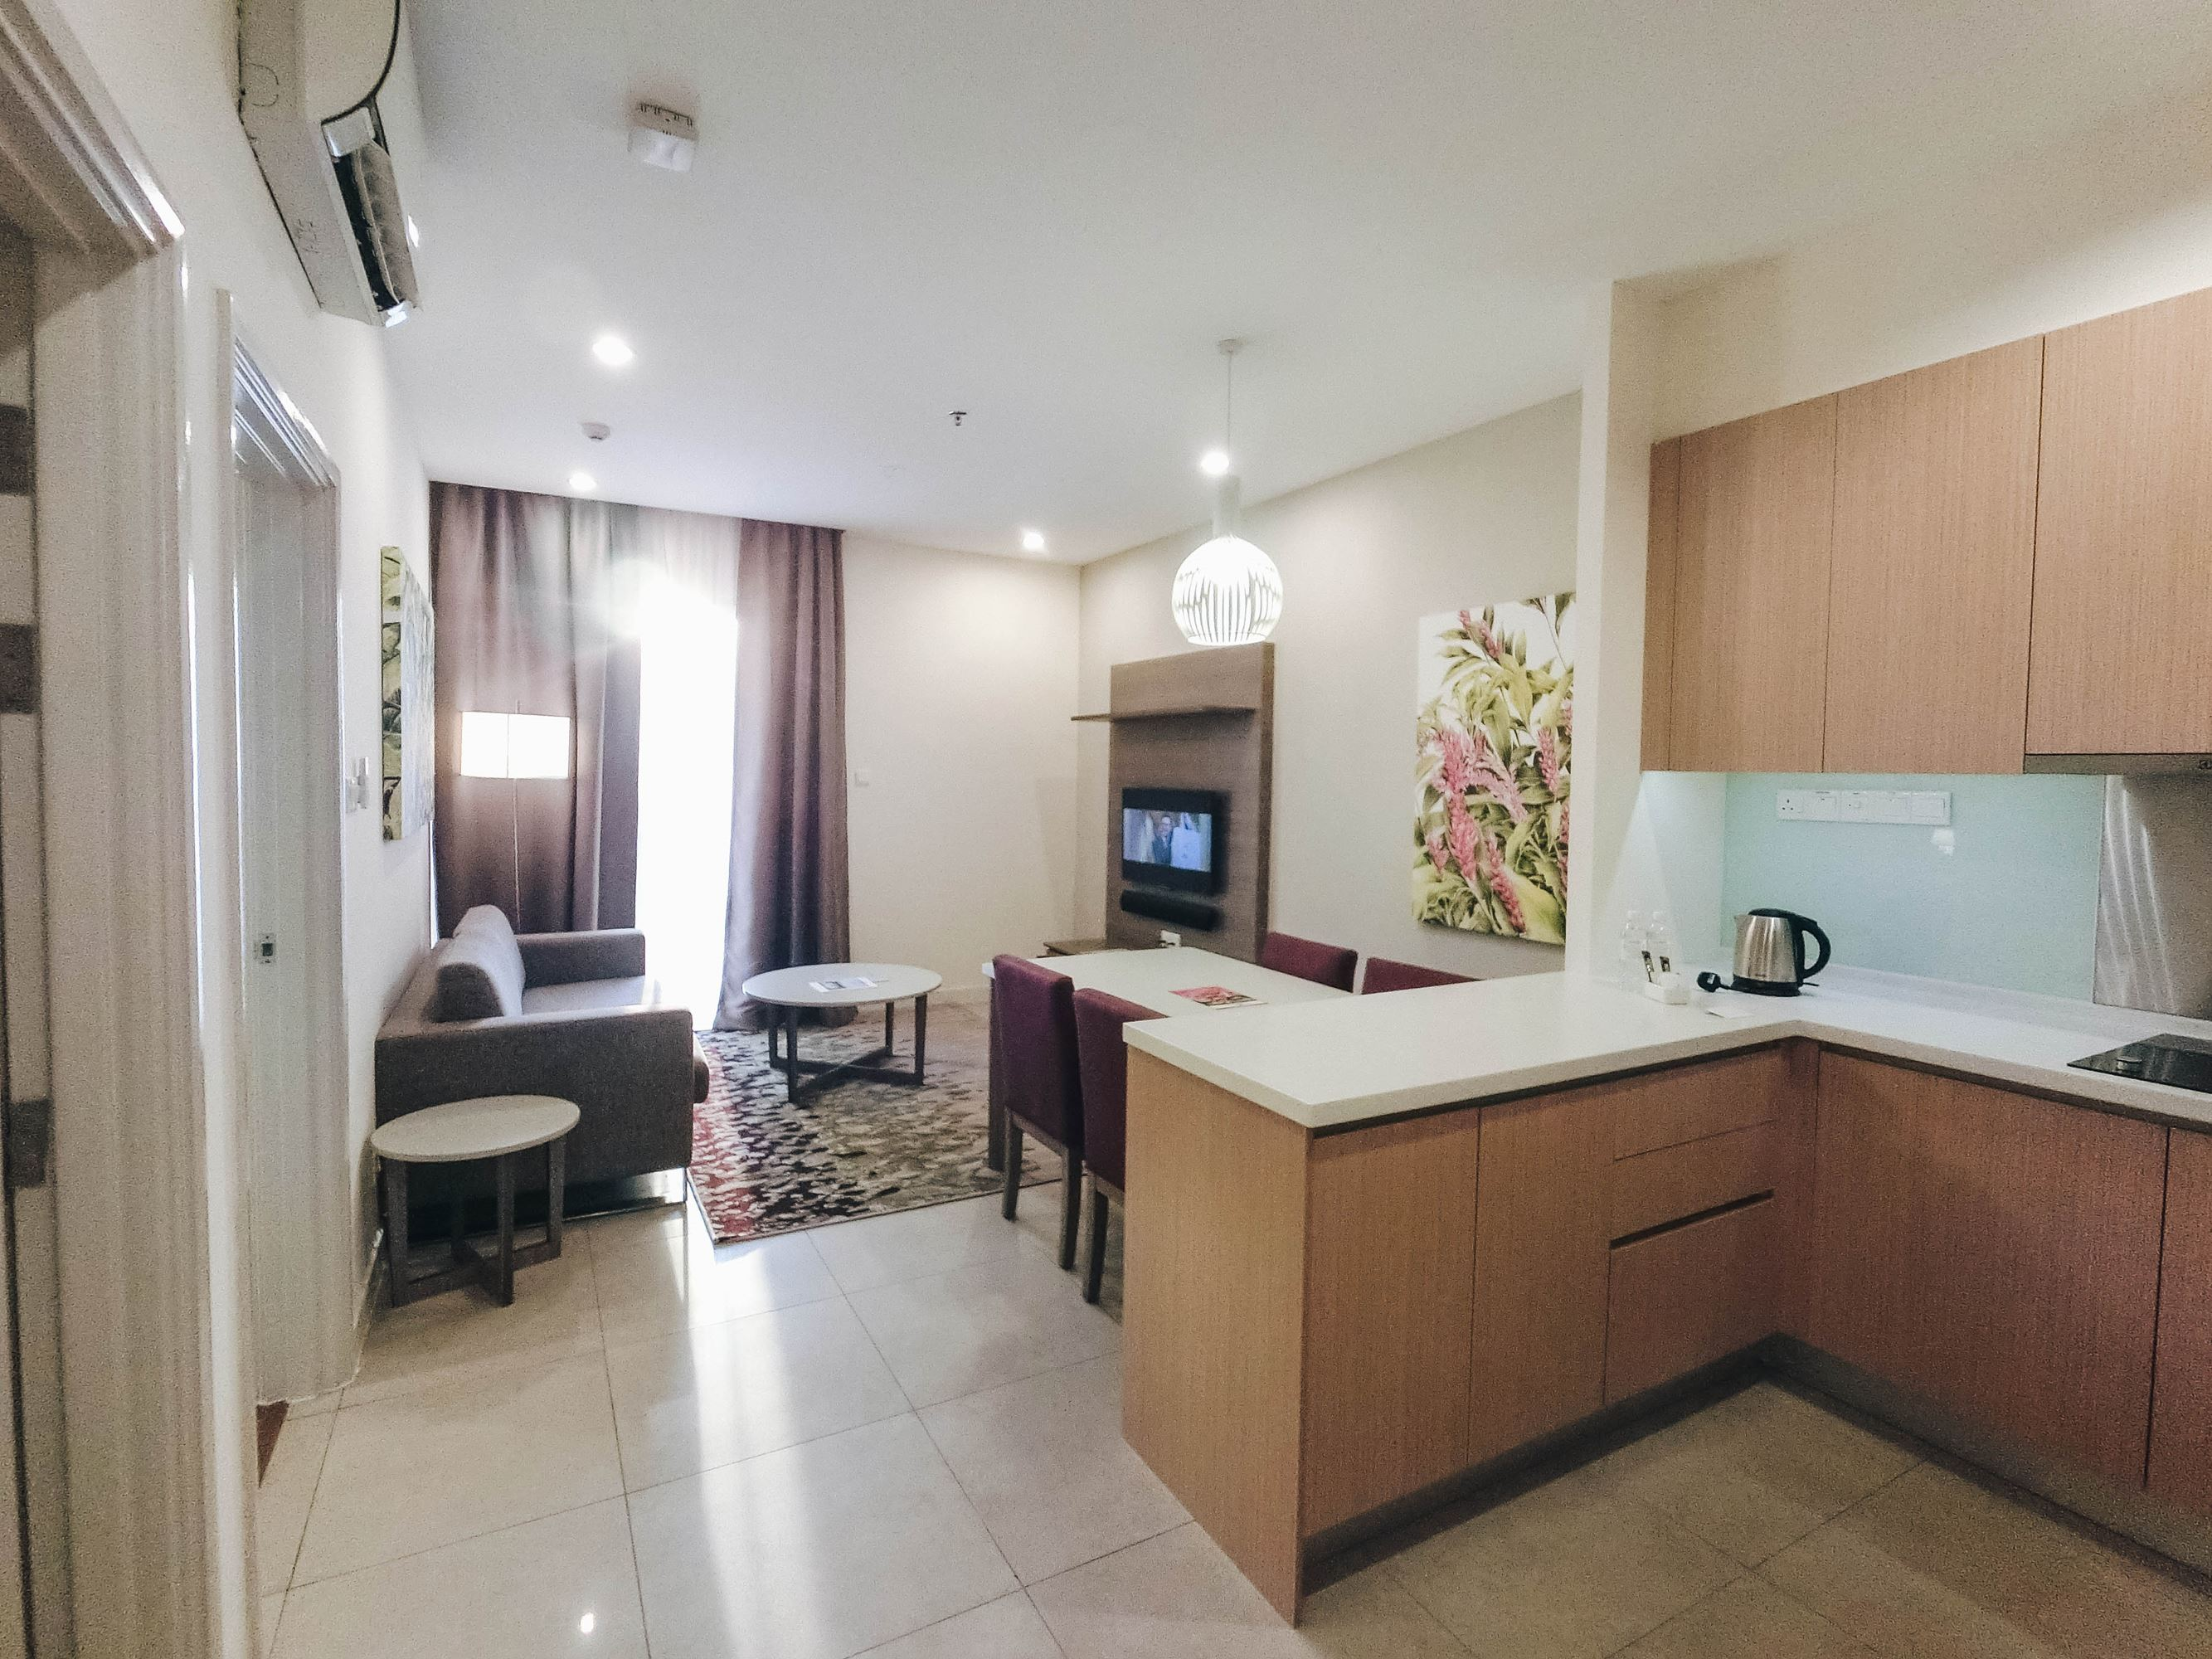 1-BEDROOM PREMIER - Living Room Somerset Medini Iskandar Puteri